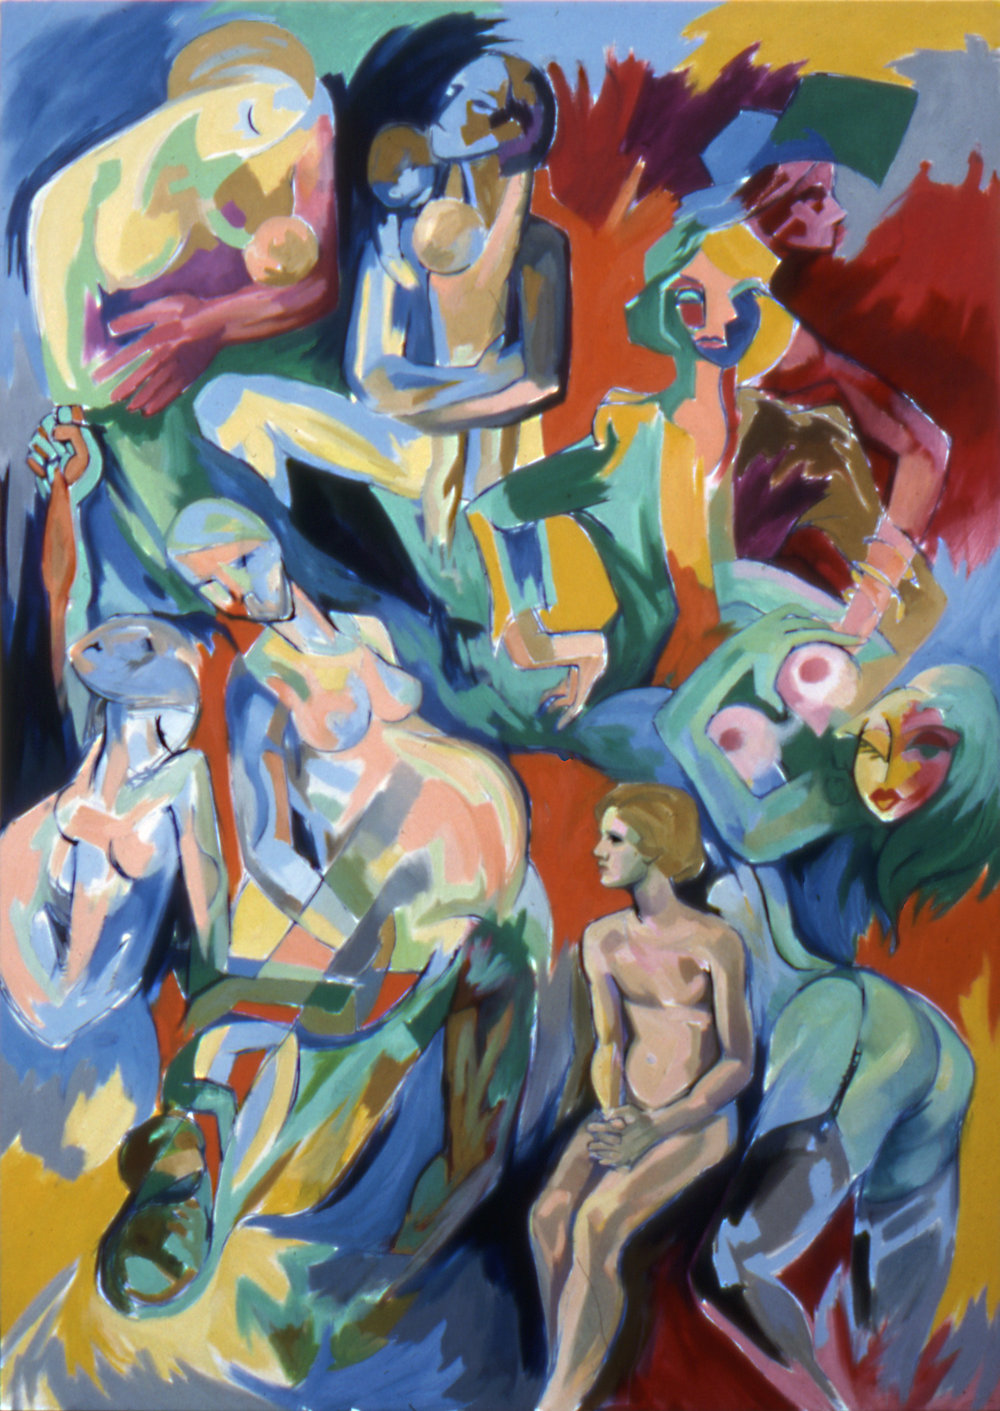 IMAGES OF WOMAN Oil on canvas, 186cm x 104cm